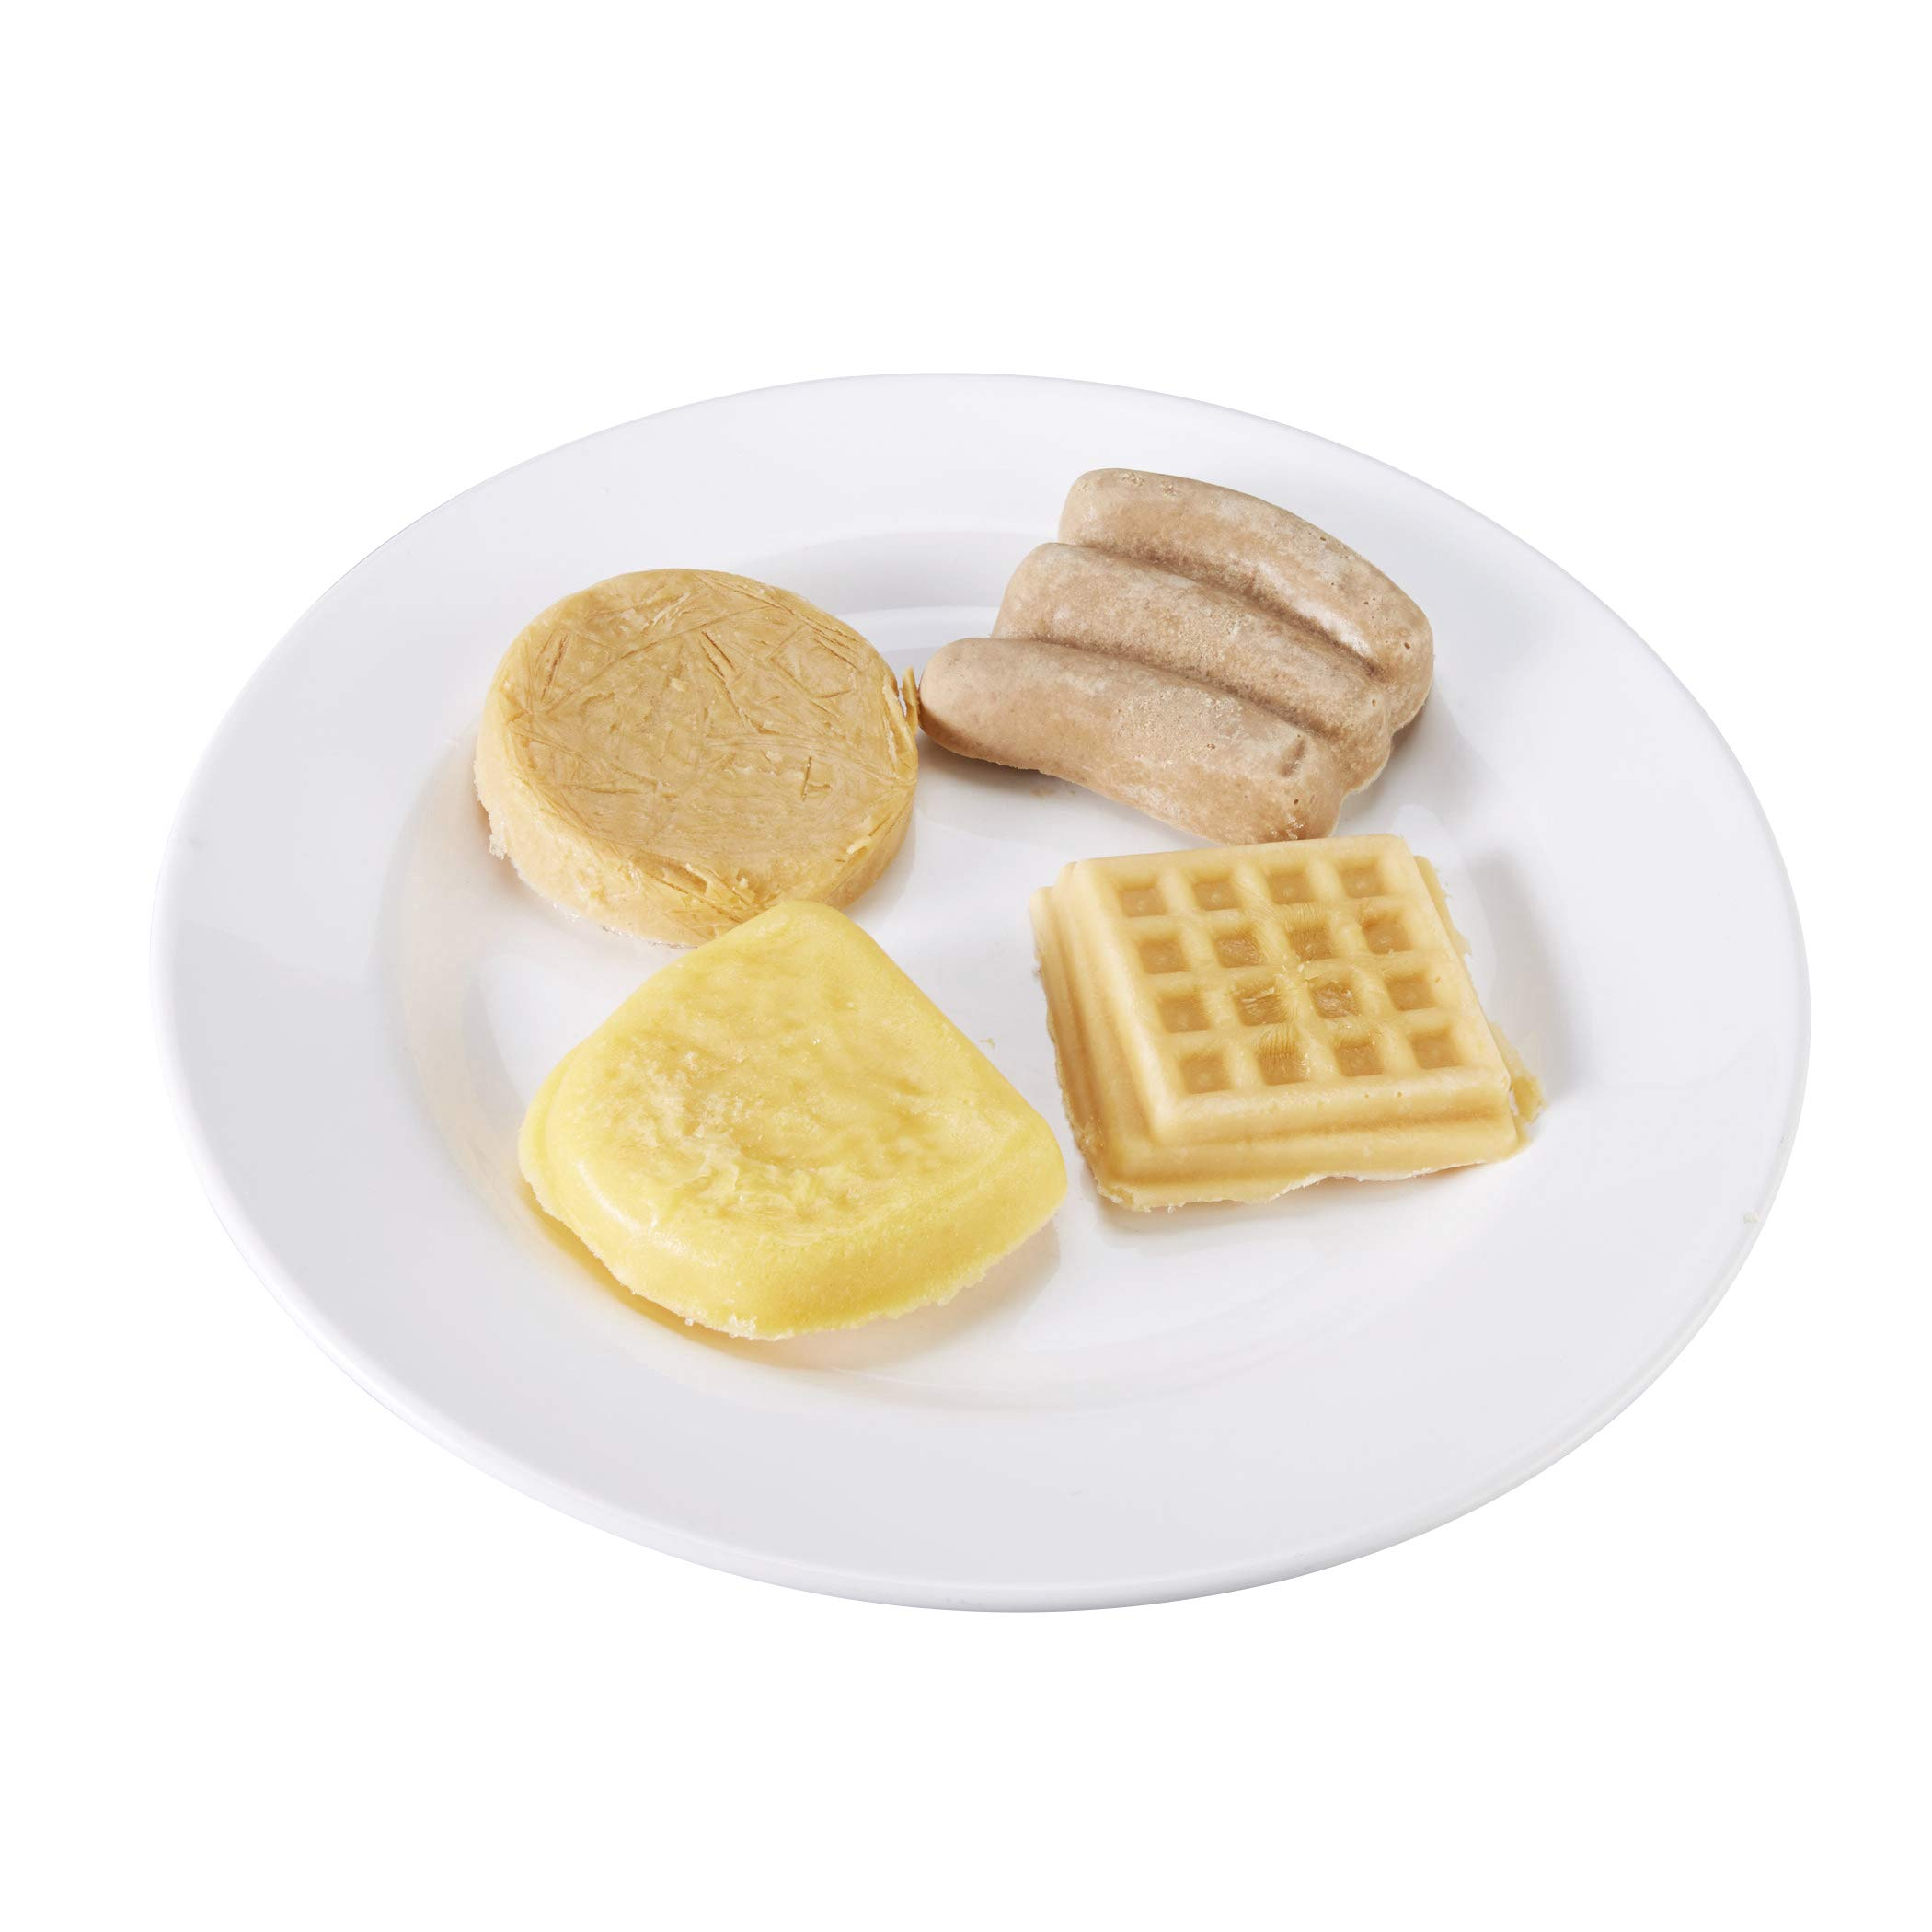 Hormel Healthlabs Thick & Easy Pureed Breakfast Variety Pack (Omelet, Pancake, Sausage, Waffle) 2.5 ounce Pack of 24